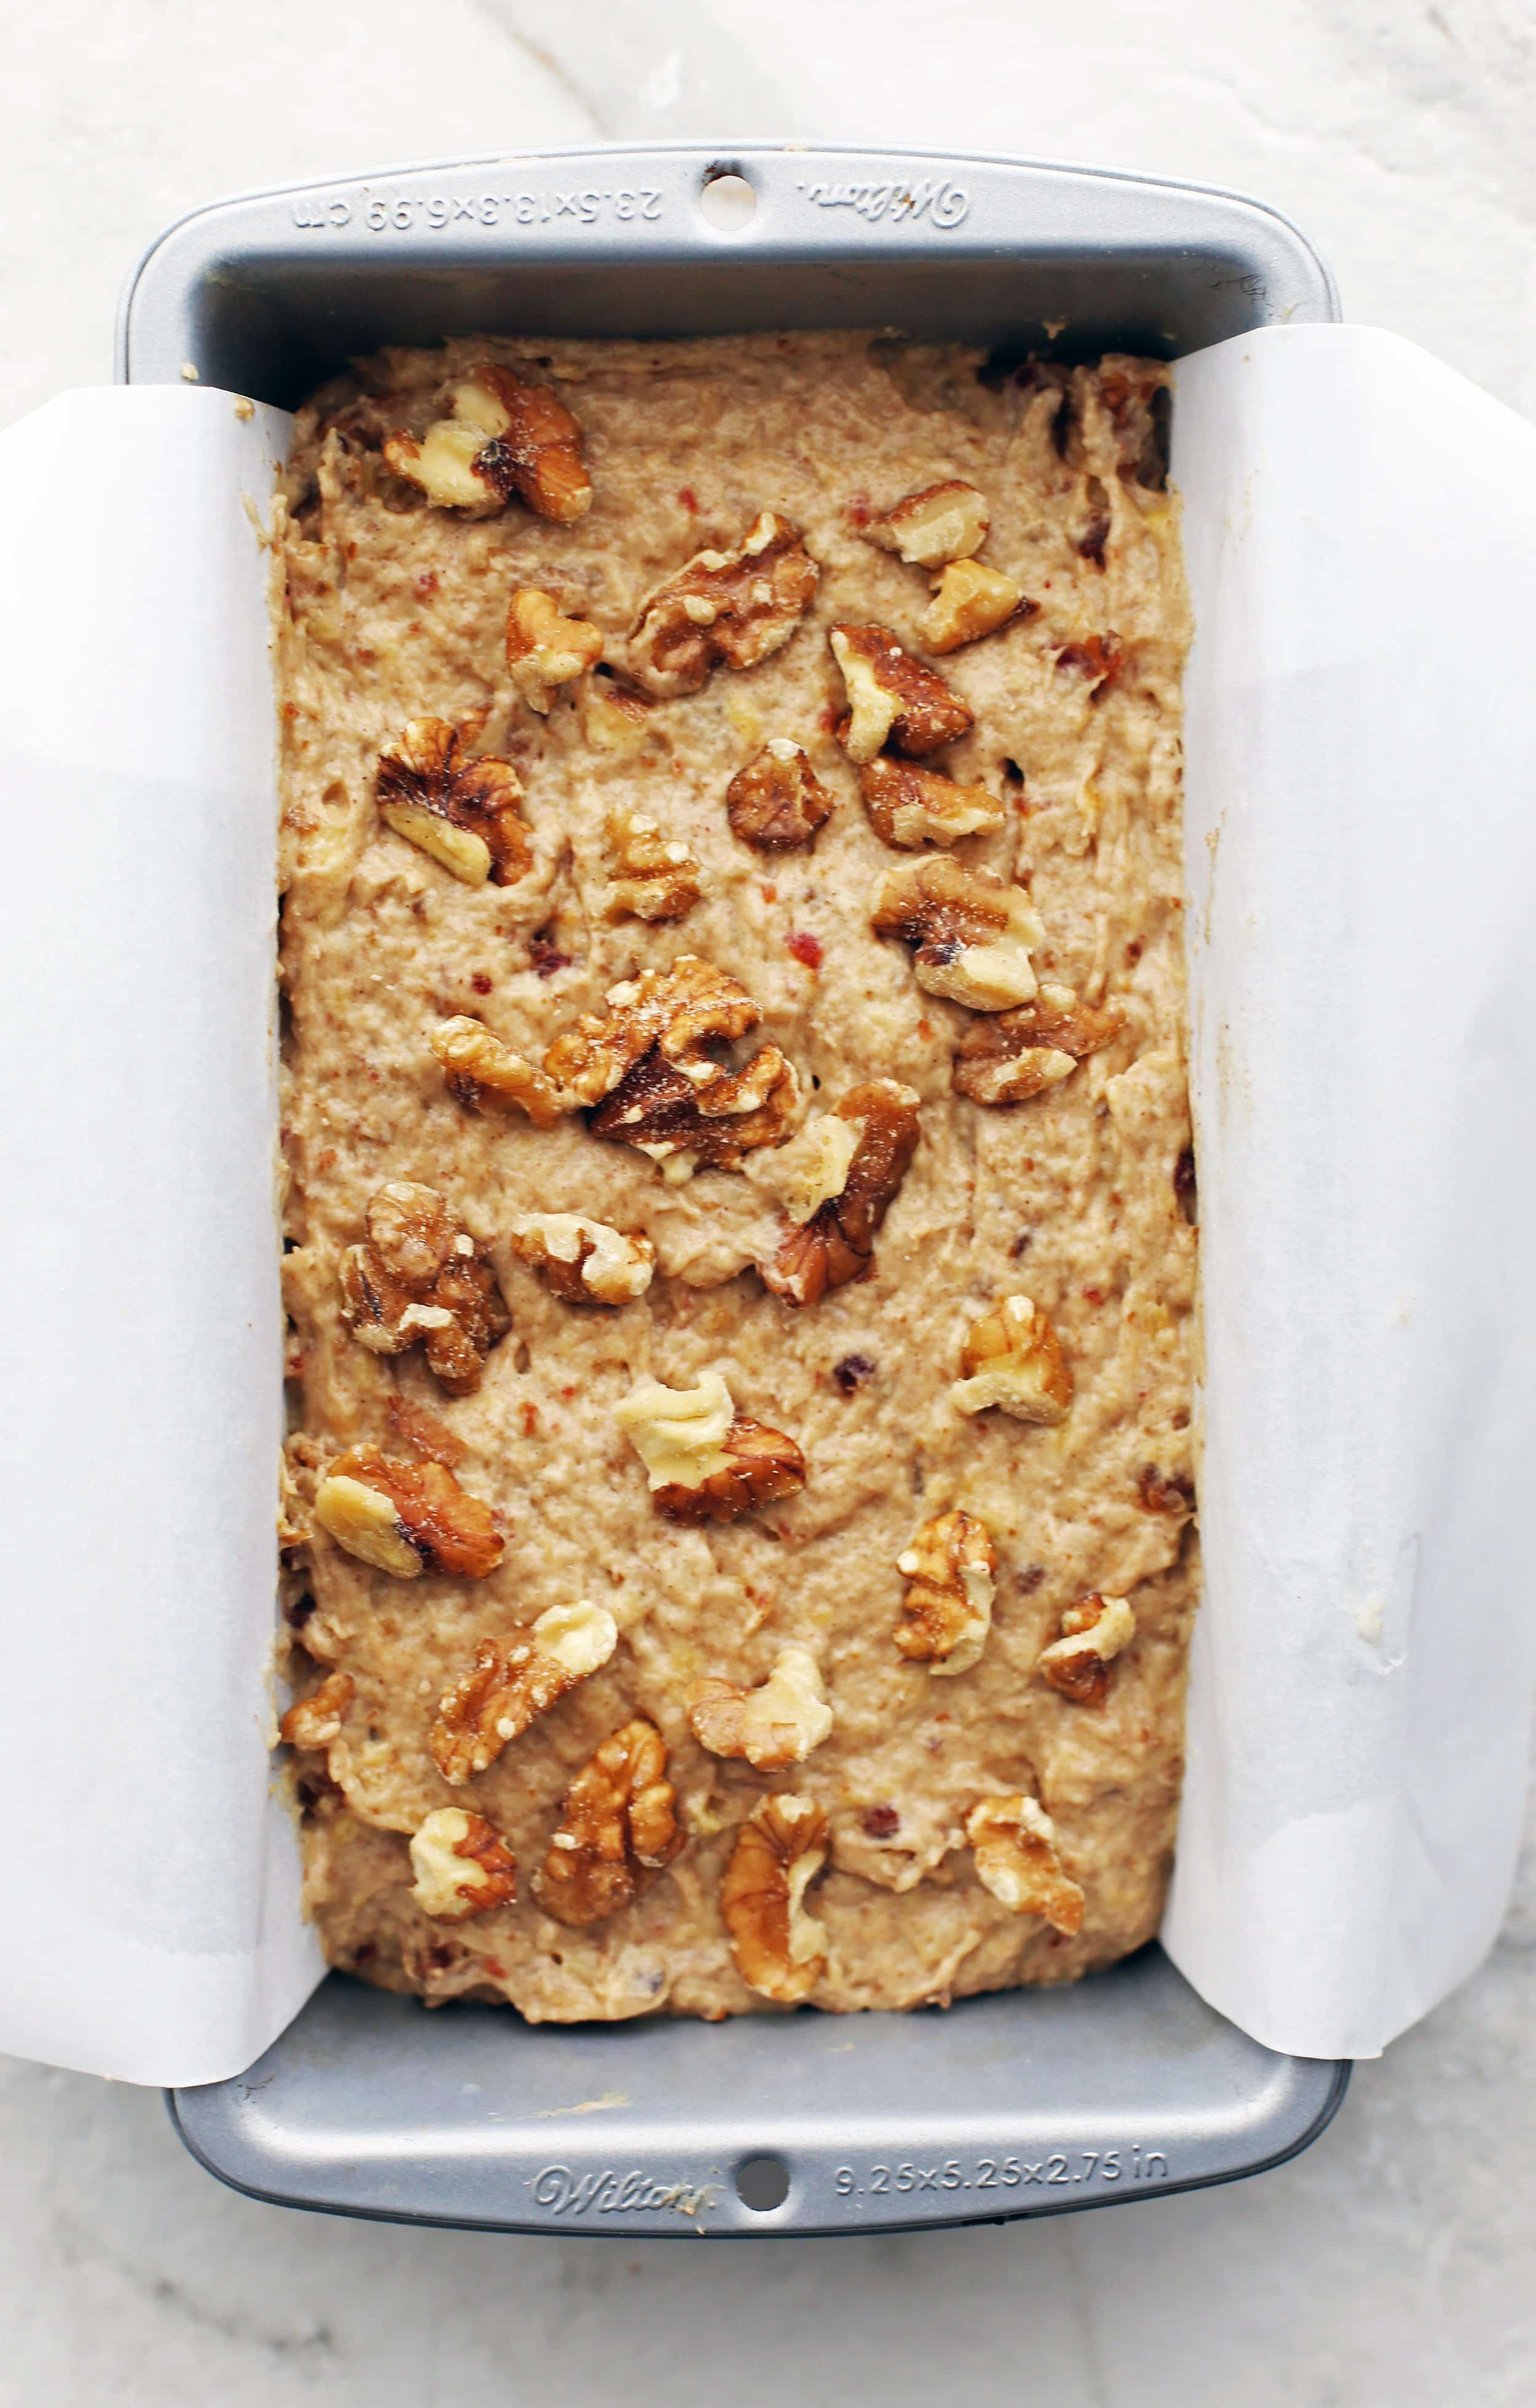 Date Banana Nut Bread dough topped with walnuts in a parchment paper-lined loaf pan.